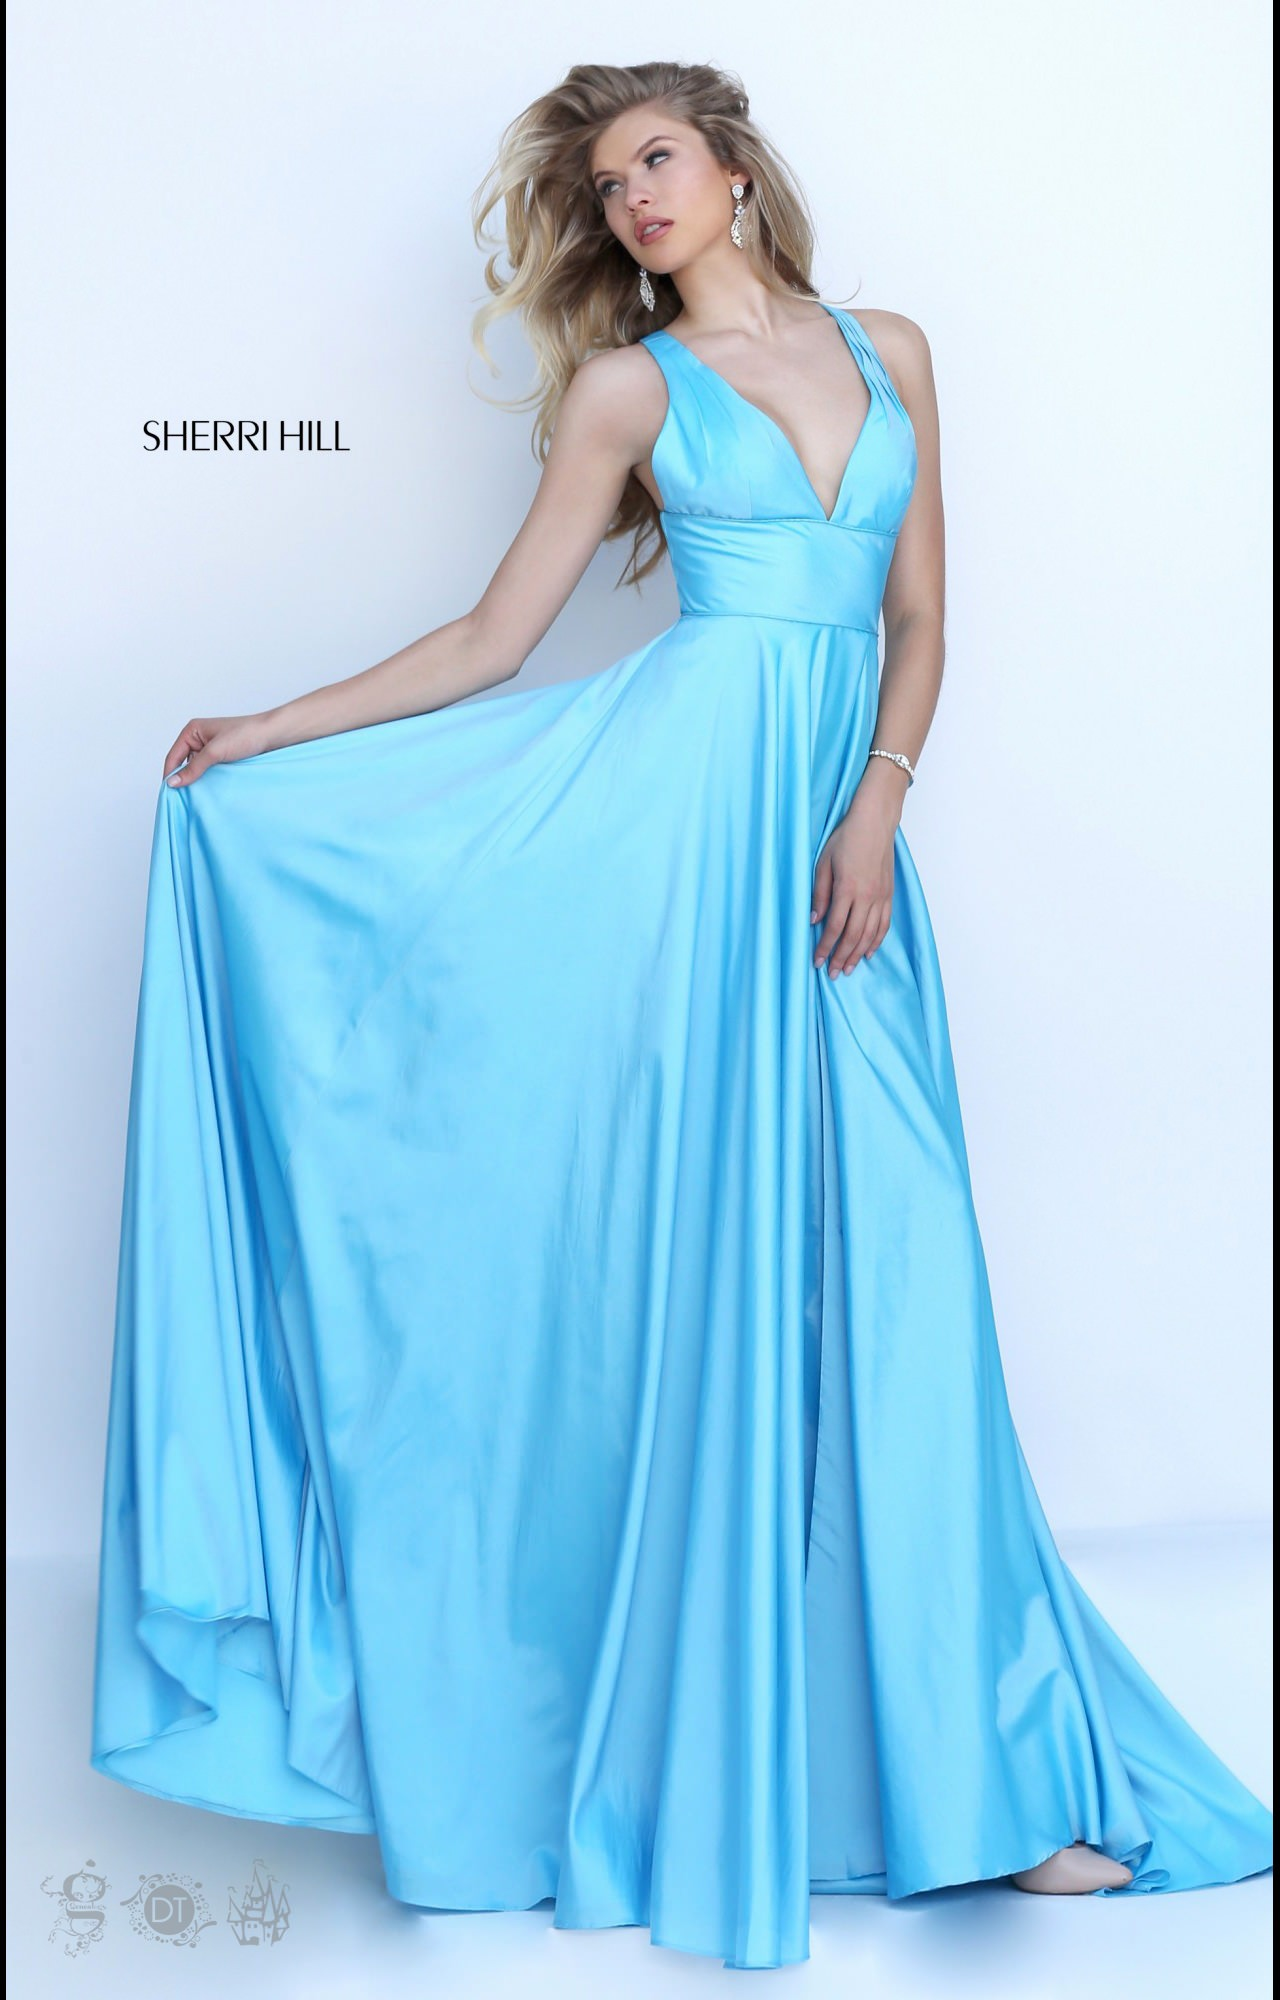 Sherri Hill 50296 - The Fly Me to the Moon Dress Prom Dress